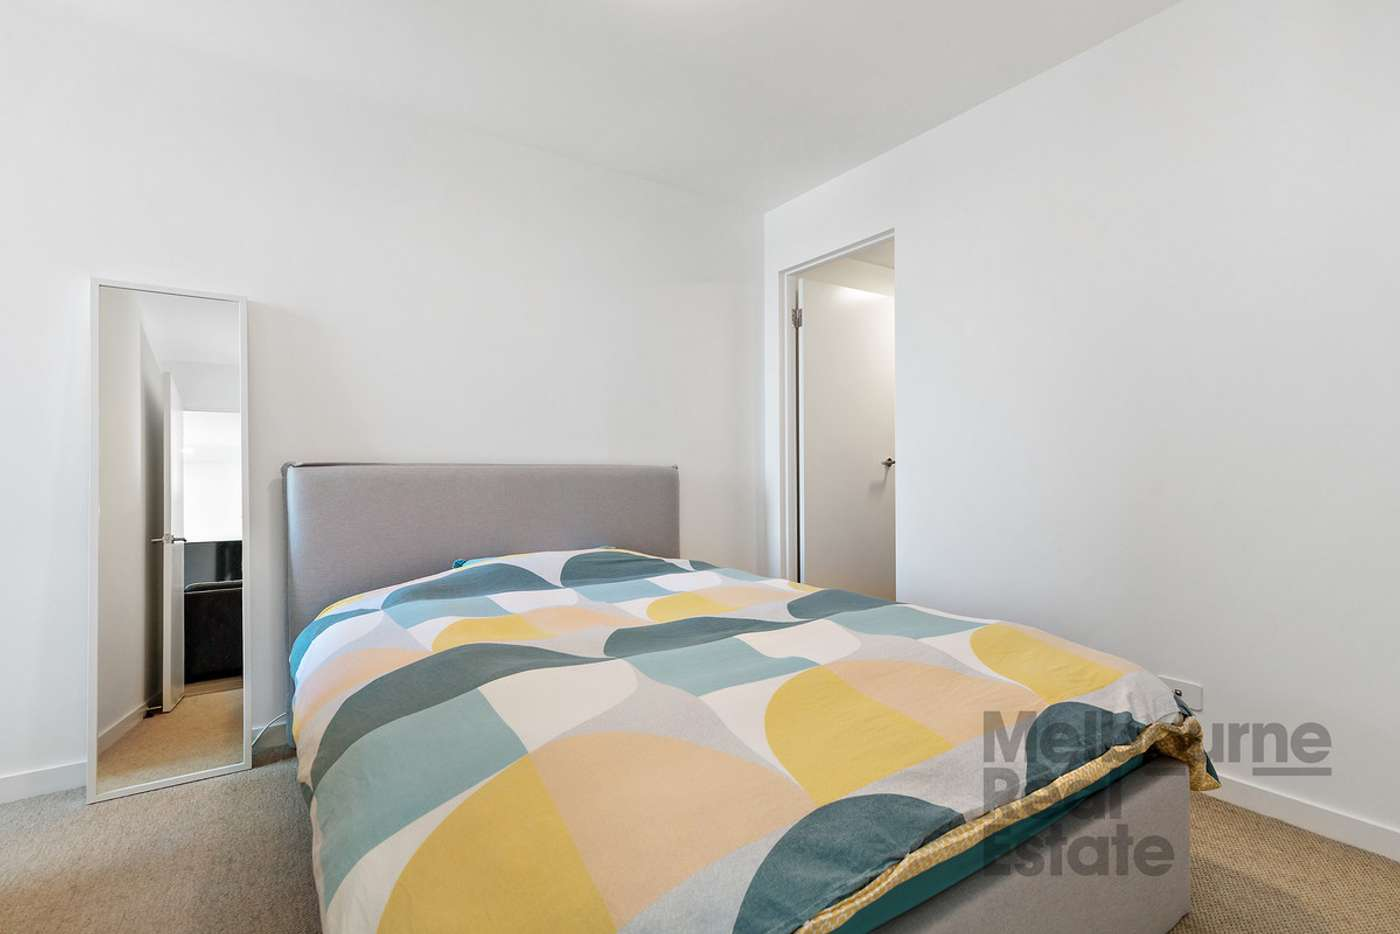 Sixth view of Homely apartment listing, 412/51 Homer Street, Moonee Ponds VIC 3039